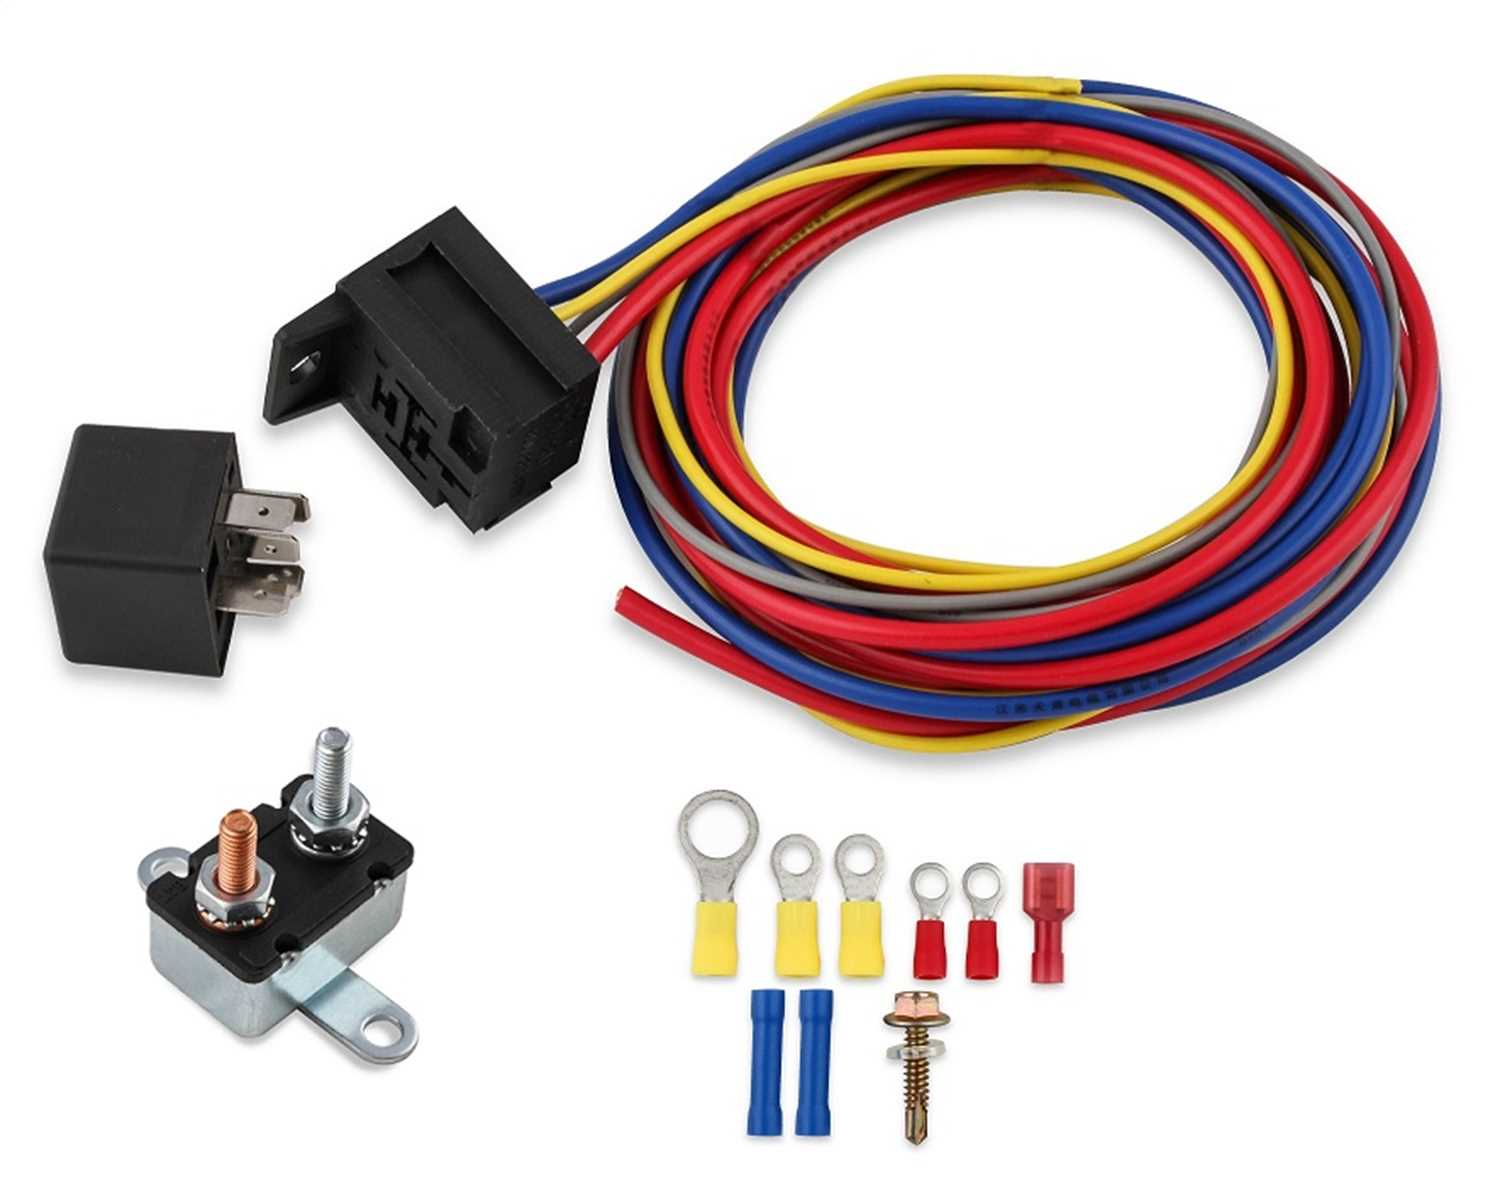 Automotive Electrical Wire Harness Connector View Electric Fuel Pump And Relay Kit Red Line Auto Msd Ignition 89618